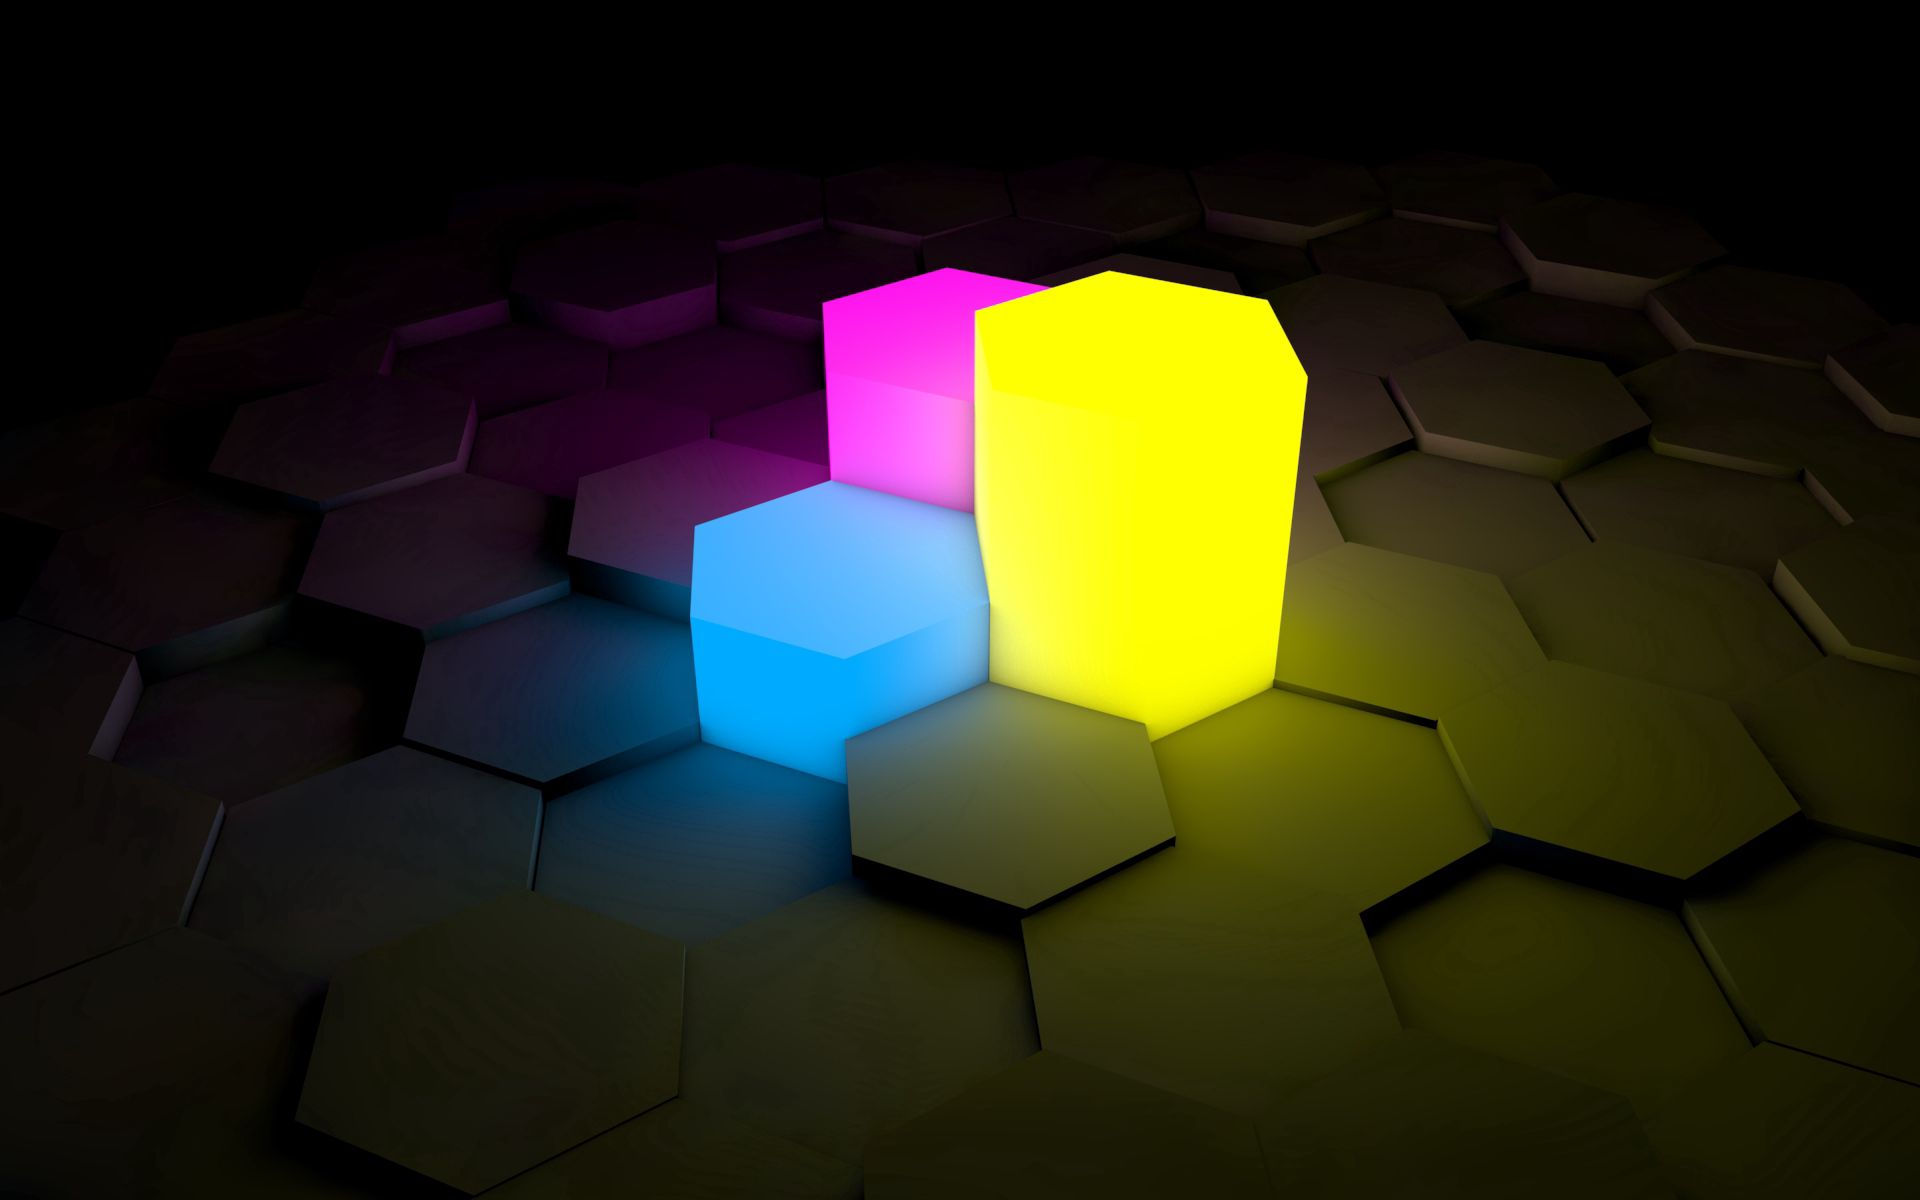 124889 download wallpaper 3D, Surface, Shine, Light, Neon, Figurines, Figures screensavers and pictures for free